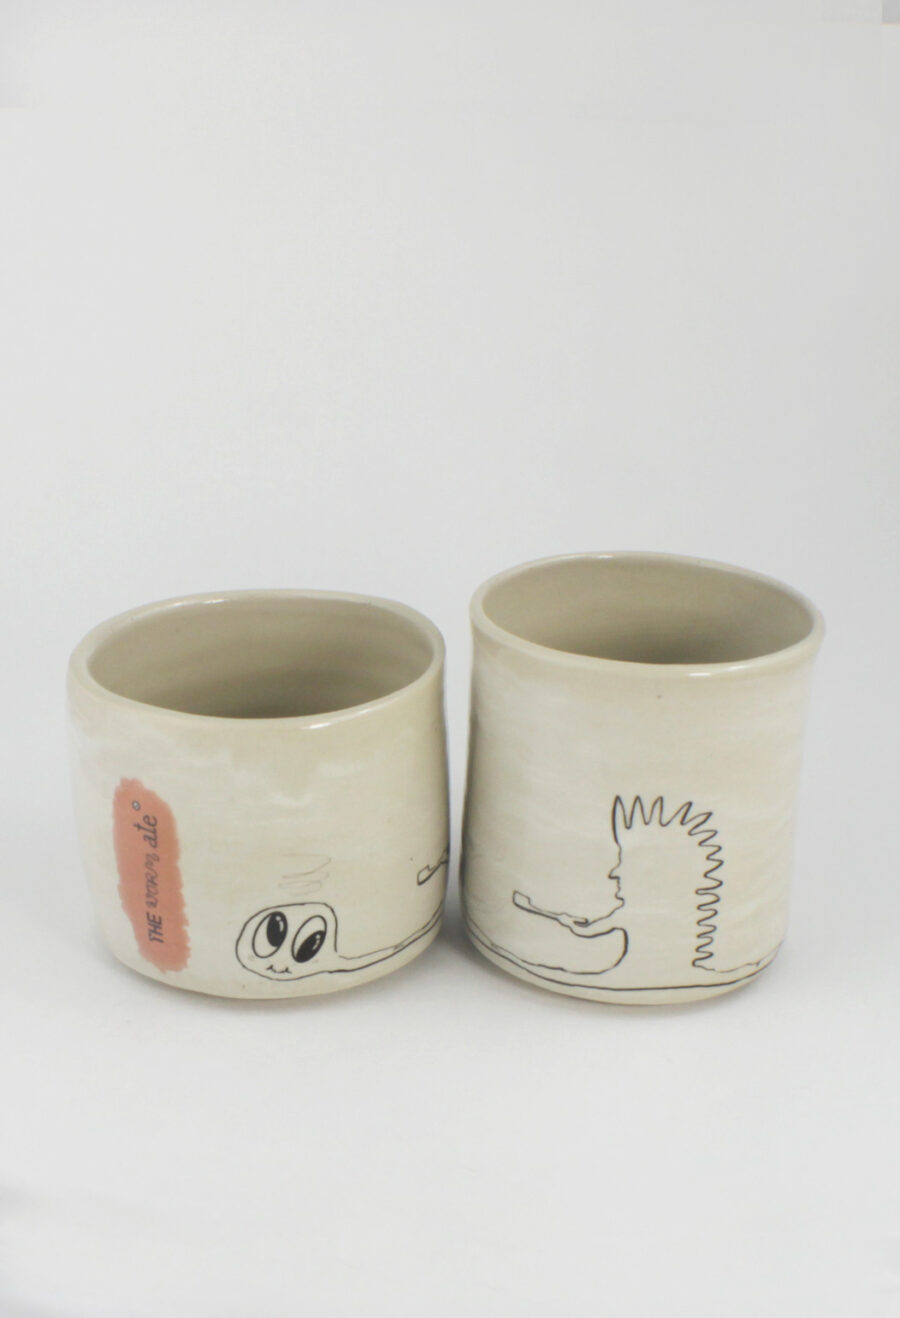 becherset keramik the-worm-ate-nummer-1-indianer-gefäß-set-my deer illustrated ceramics